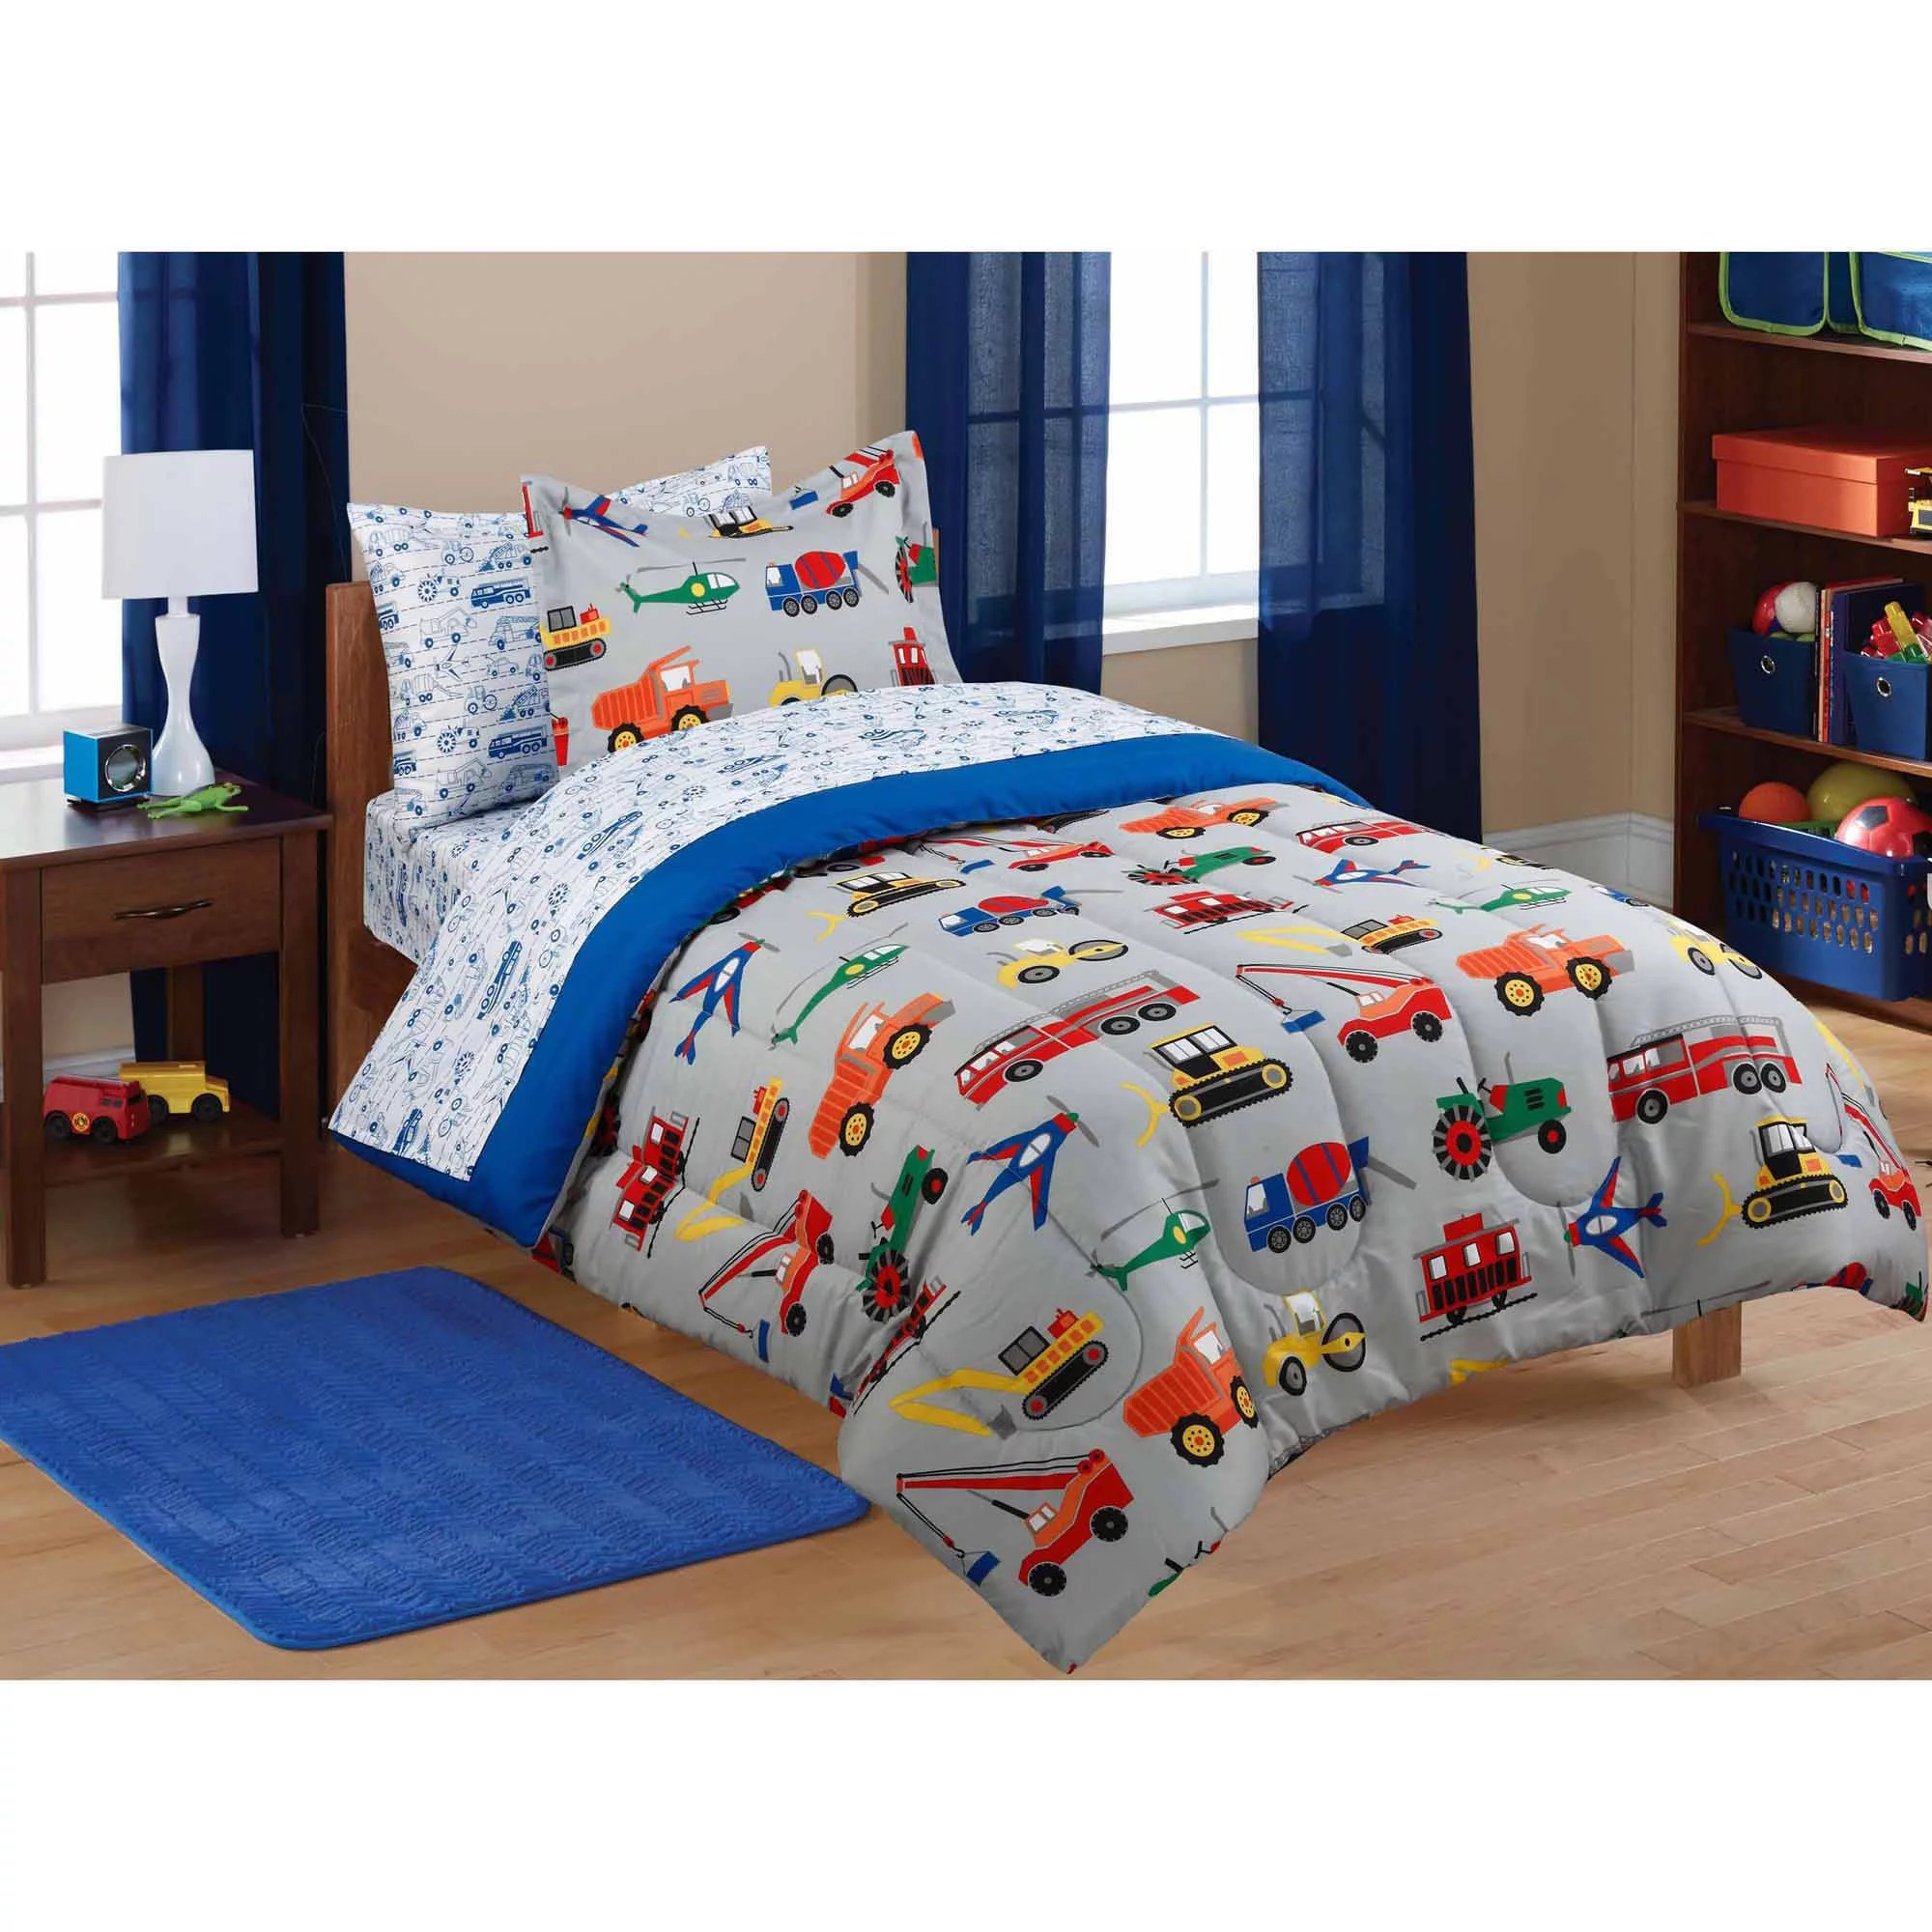 Mainstays Kids Transportation Bed In A Bag Coordinating Bedding Set Walmart Com Walmart Com